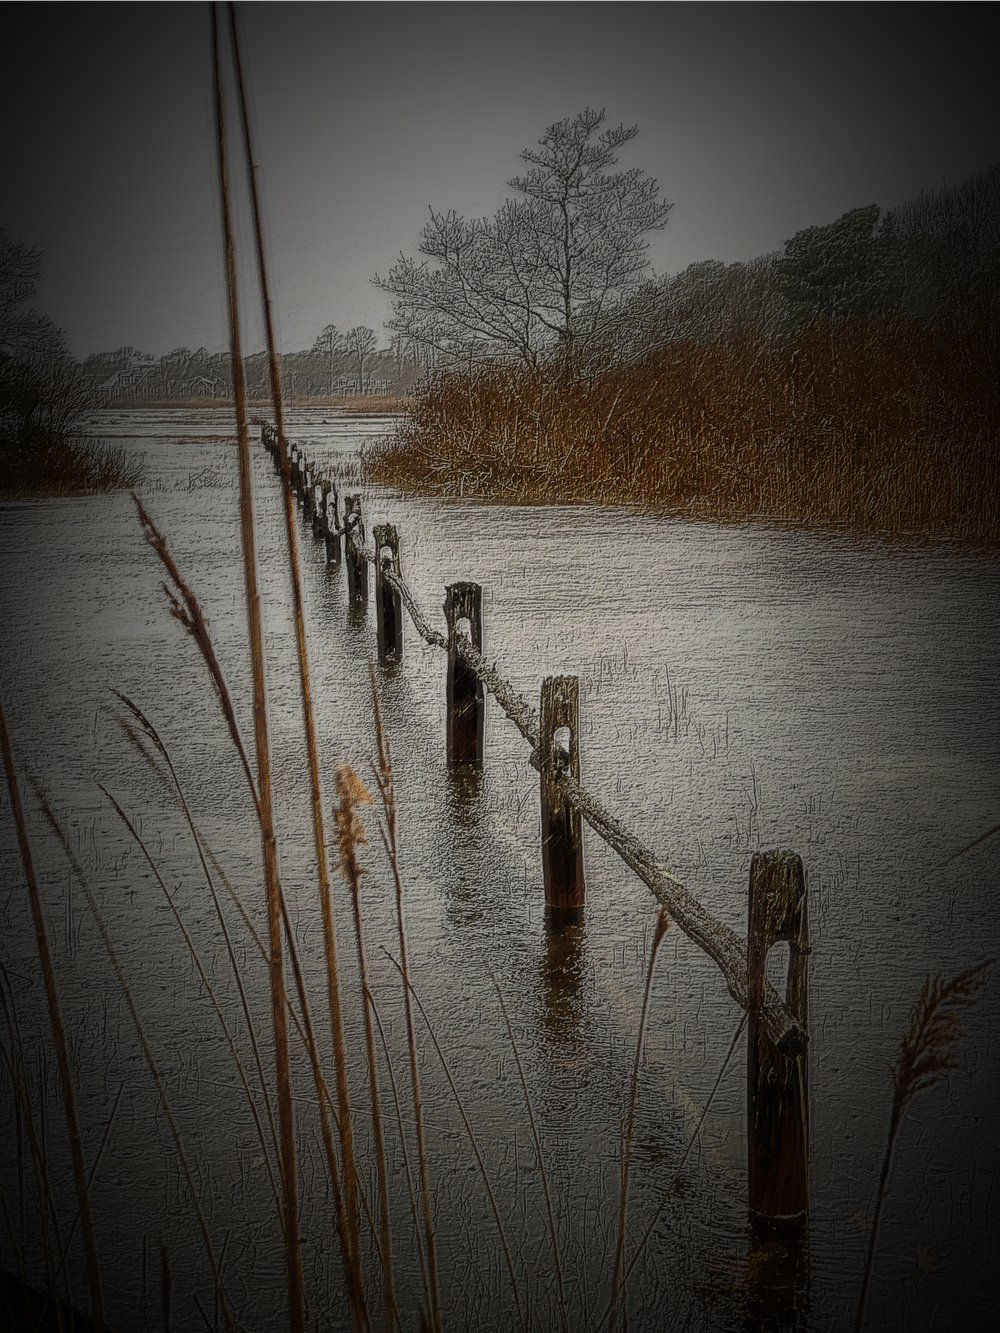 January 1, 2019 - One of my favorite scenes to photograph locally: The Centerville River, in Centerville, Massachusetts (Cape Cod).